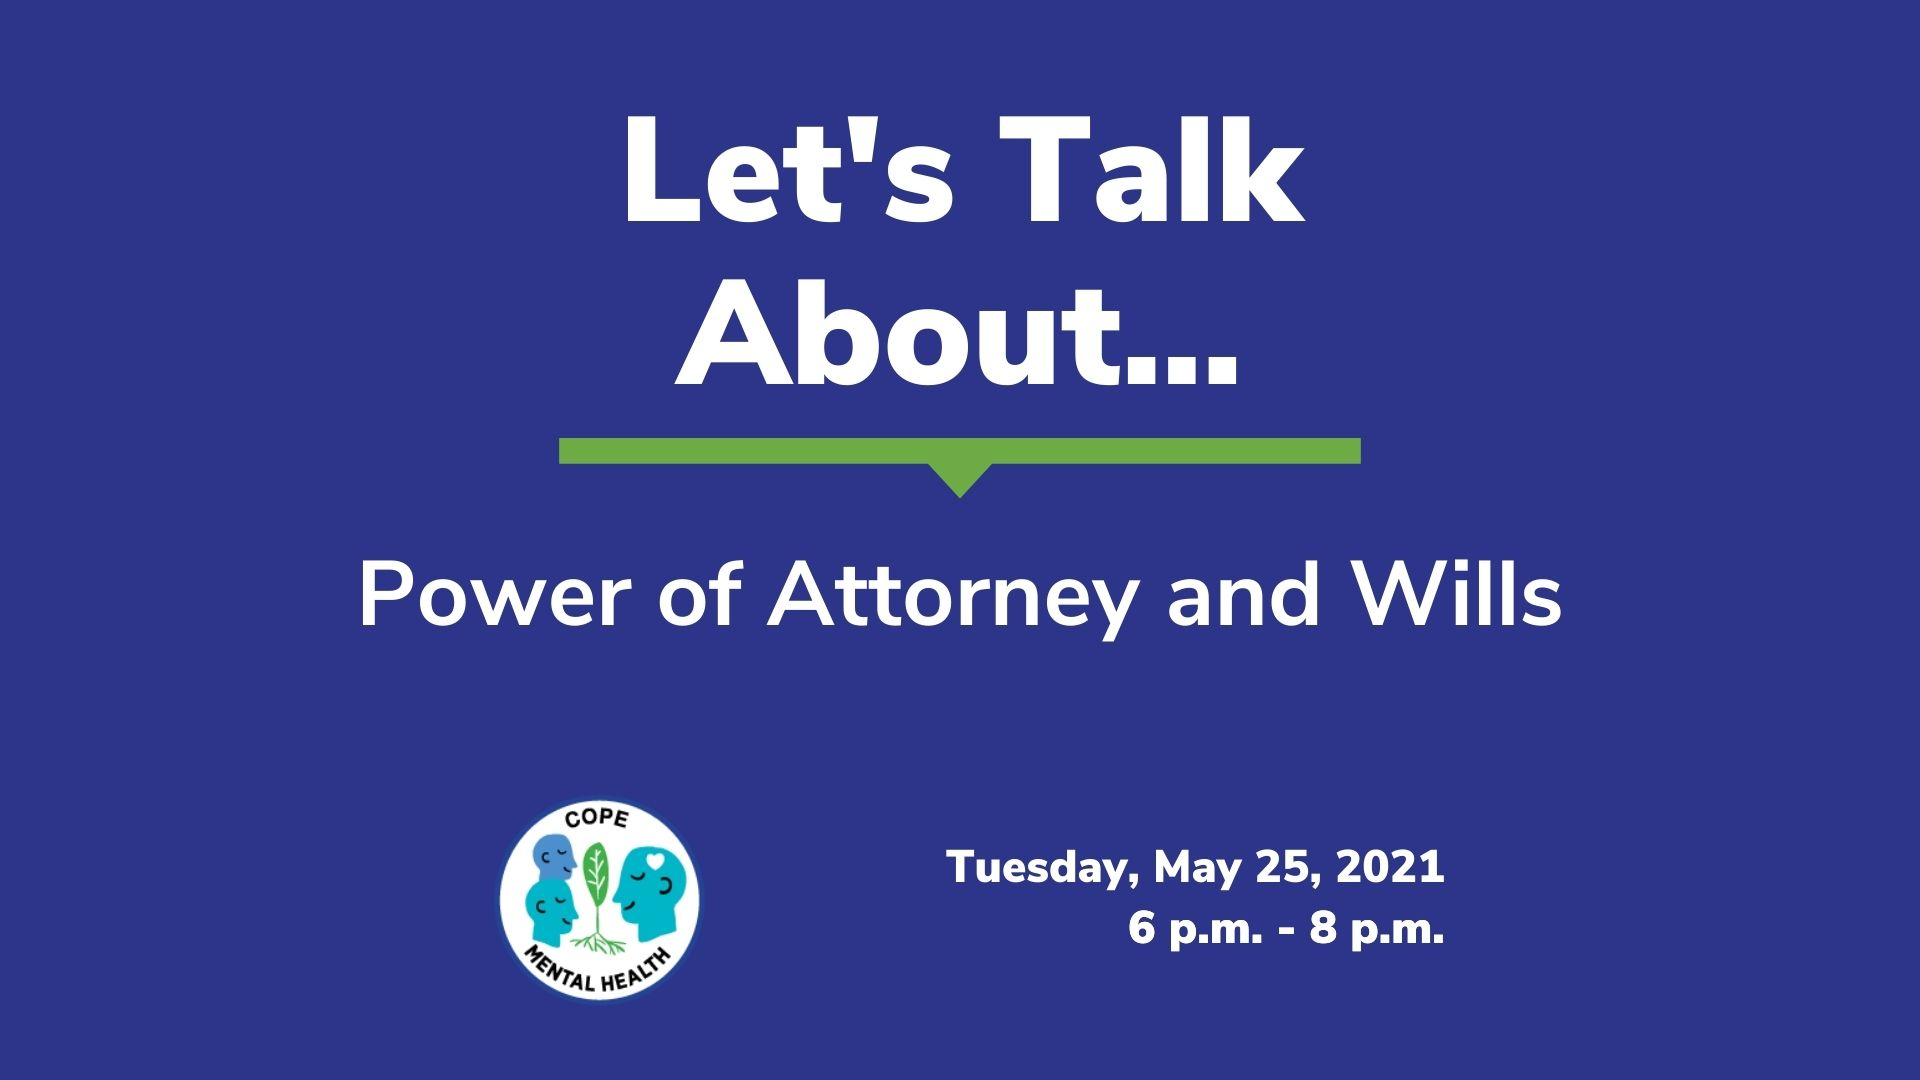 Let's Talk About Power of Attorney and Wills